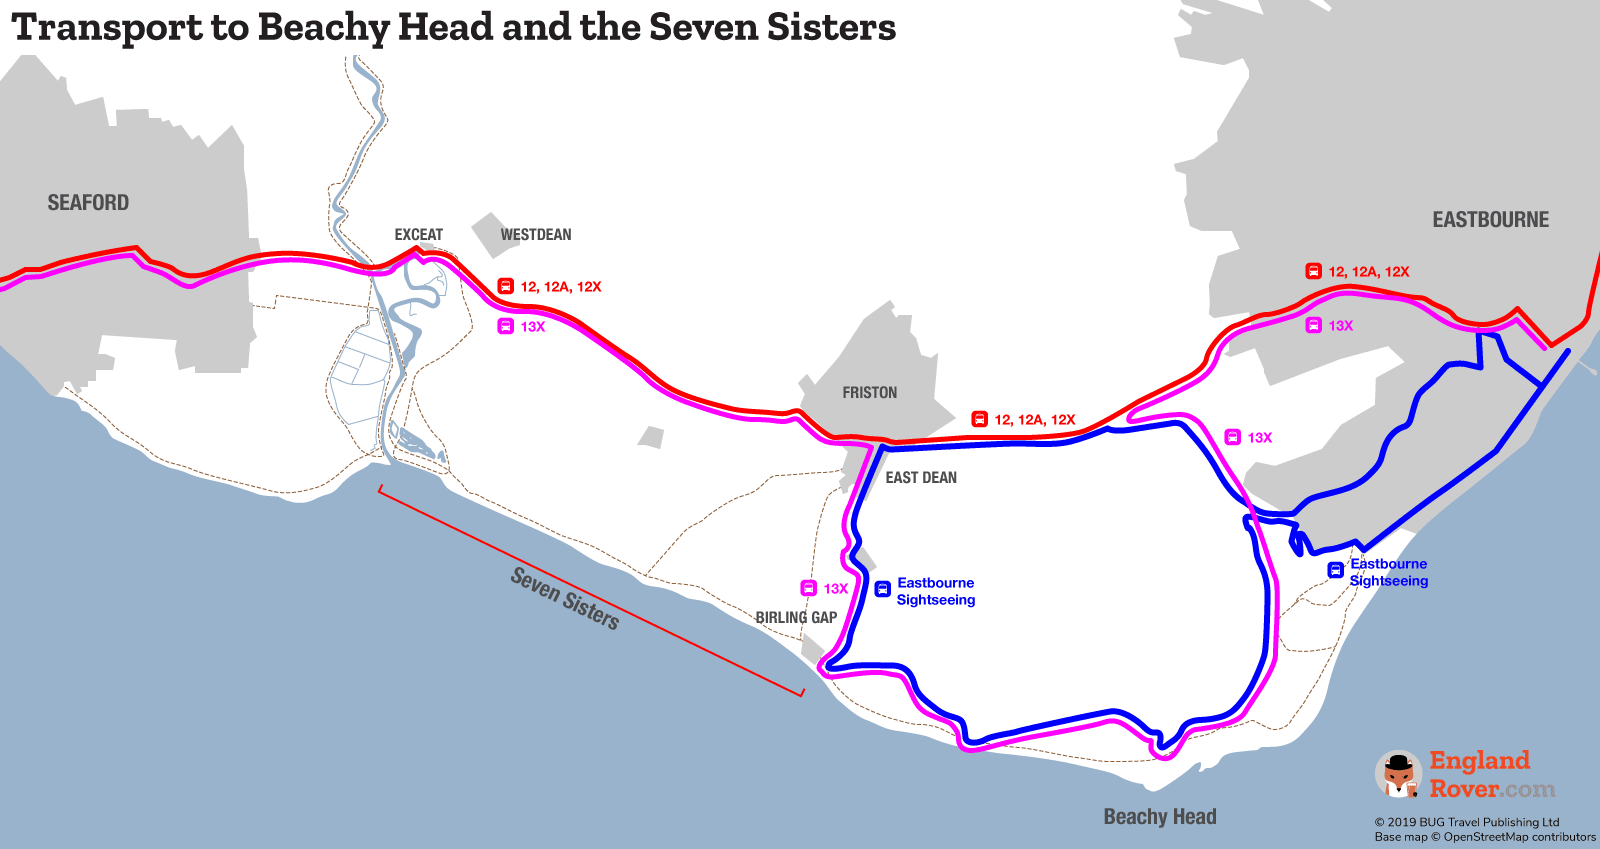 Map of bus routes to Beachy Head and the Seven Sisters